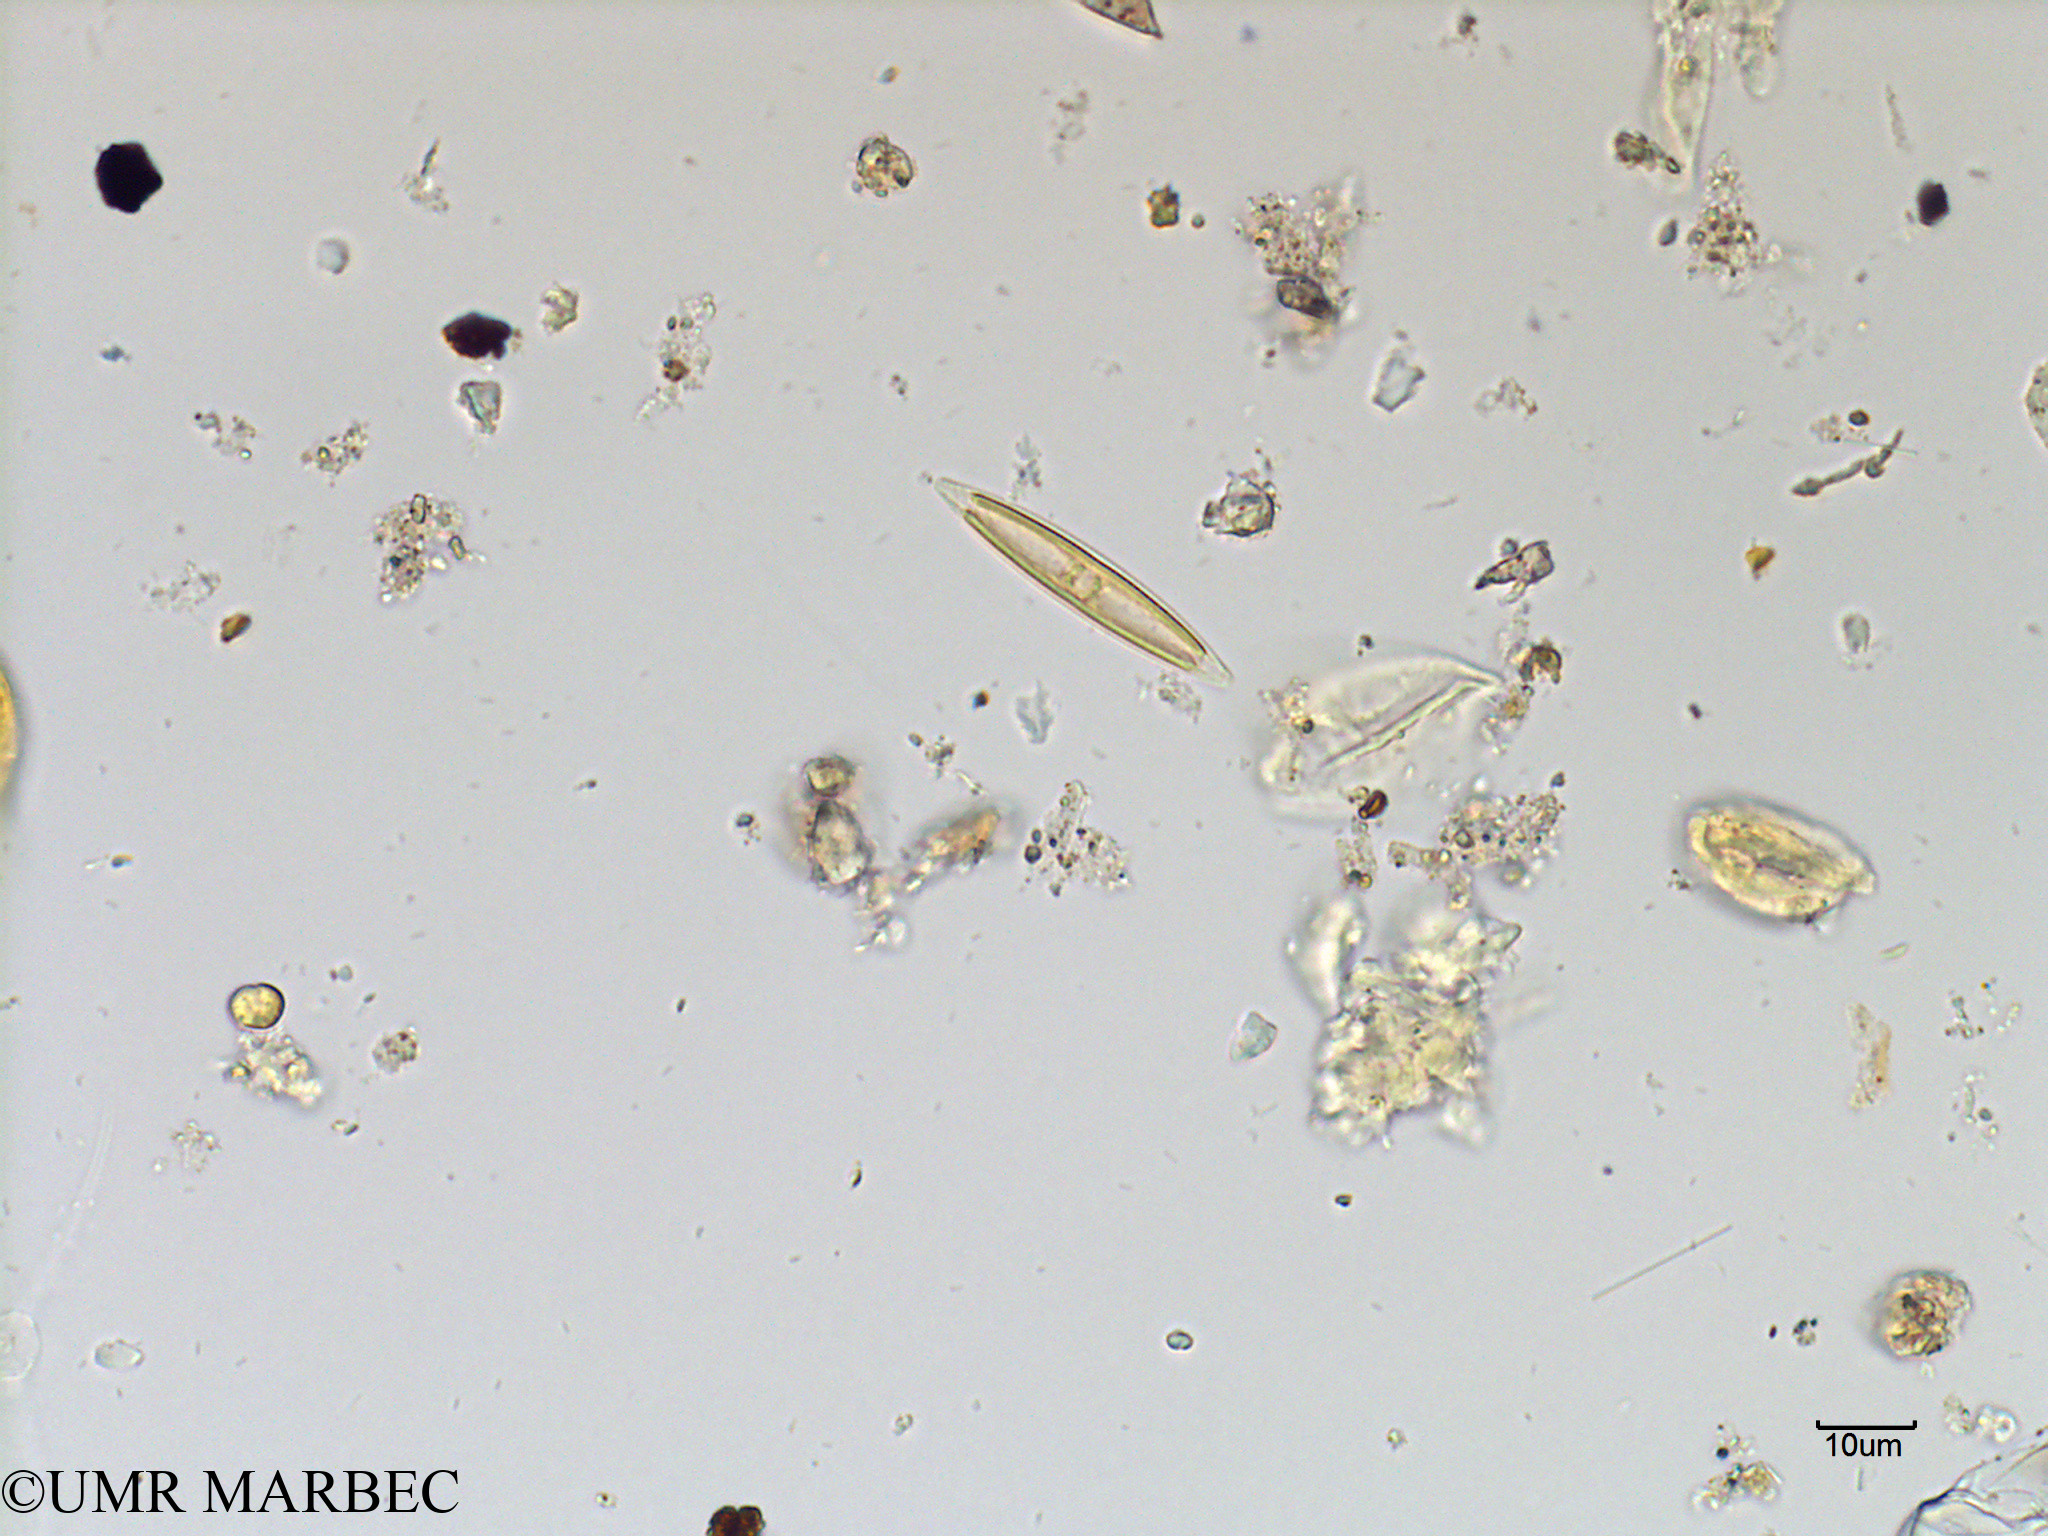 phyto/Scattered_Islands/mayotte_lagoon/SIREME May 2016/Navicula sp2 (MAY2_navicula).tif(copy).jpg